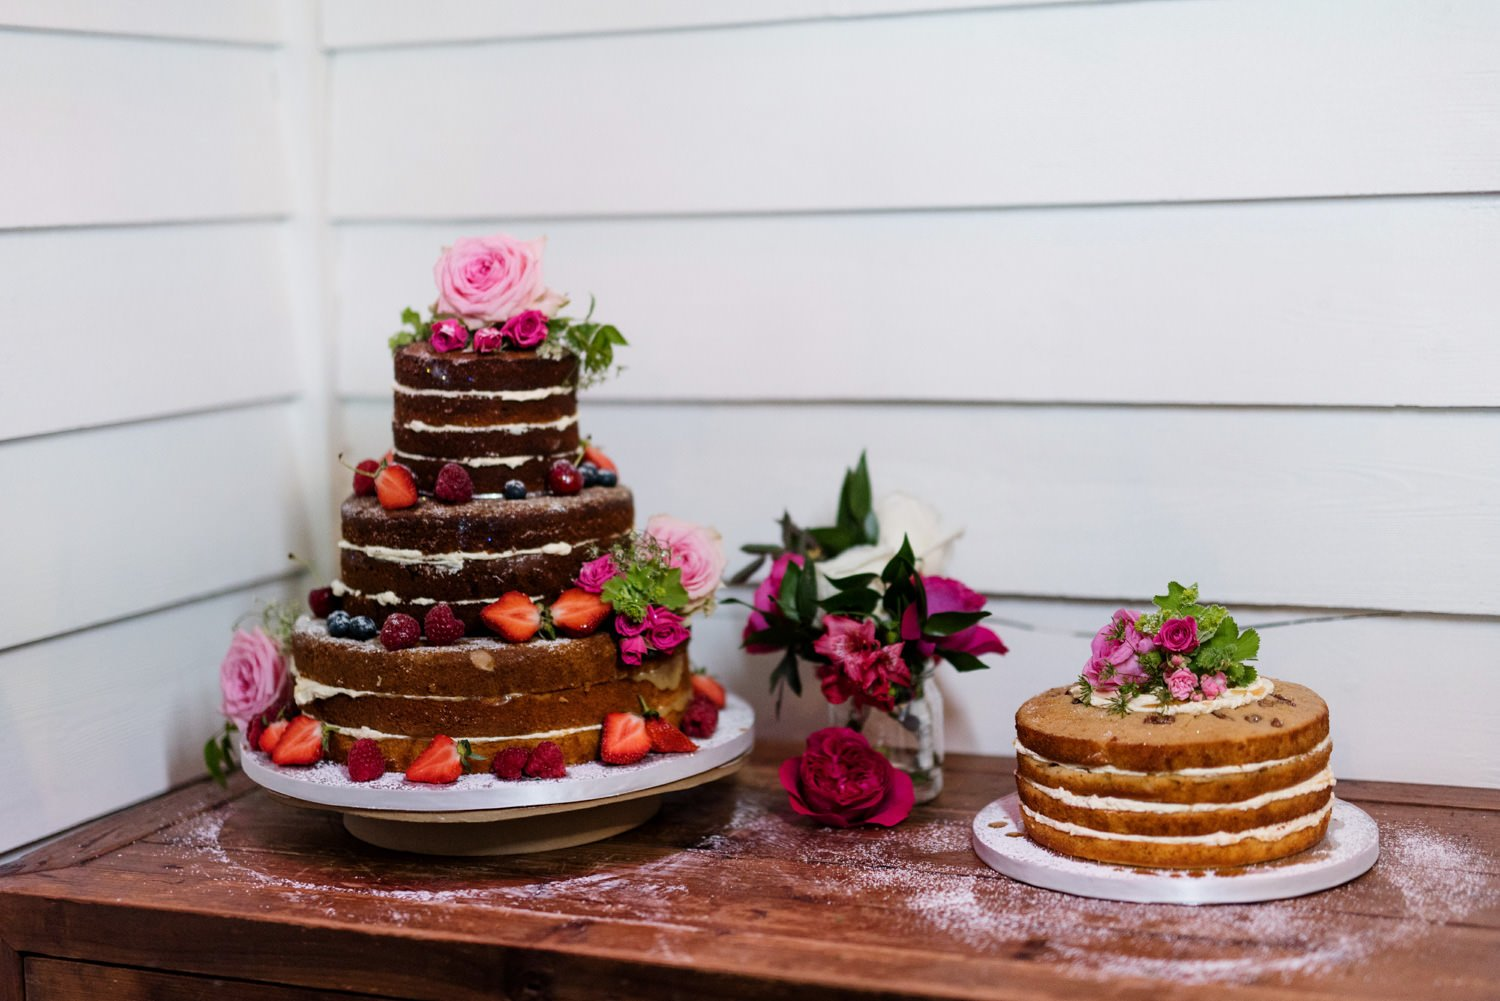 Rosanne Hollowell yummy wedding cakes Devon